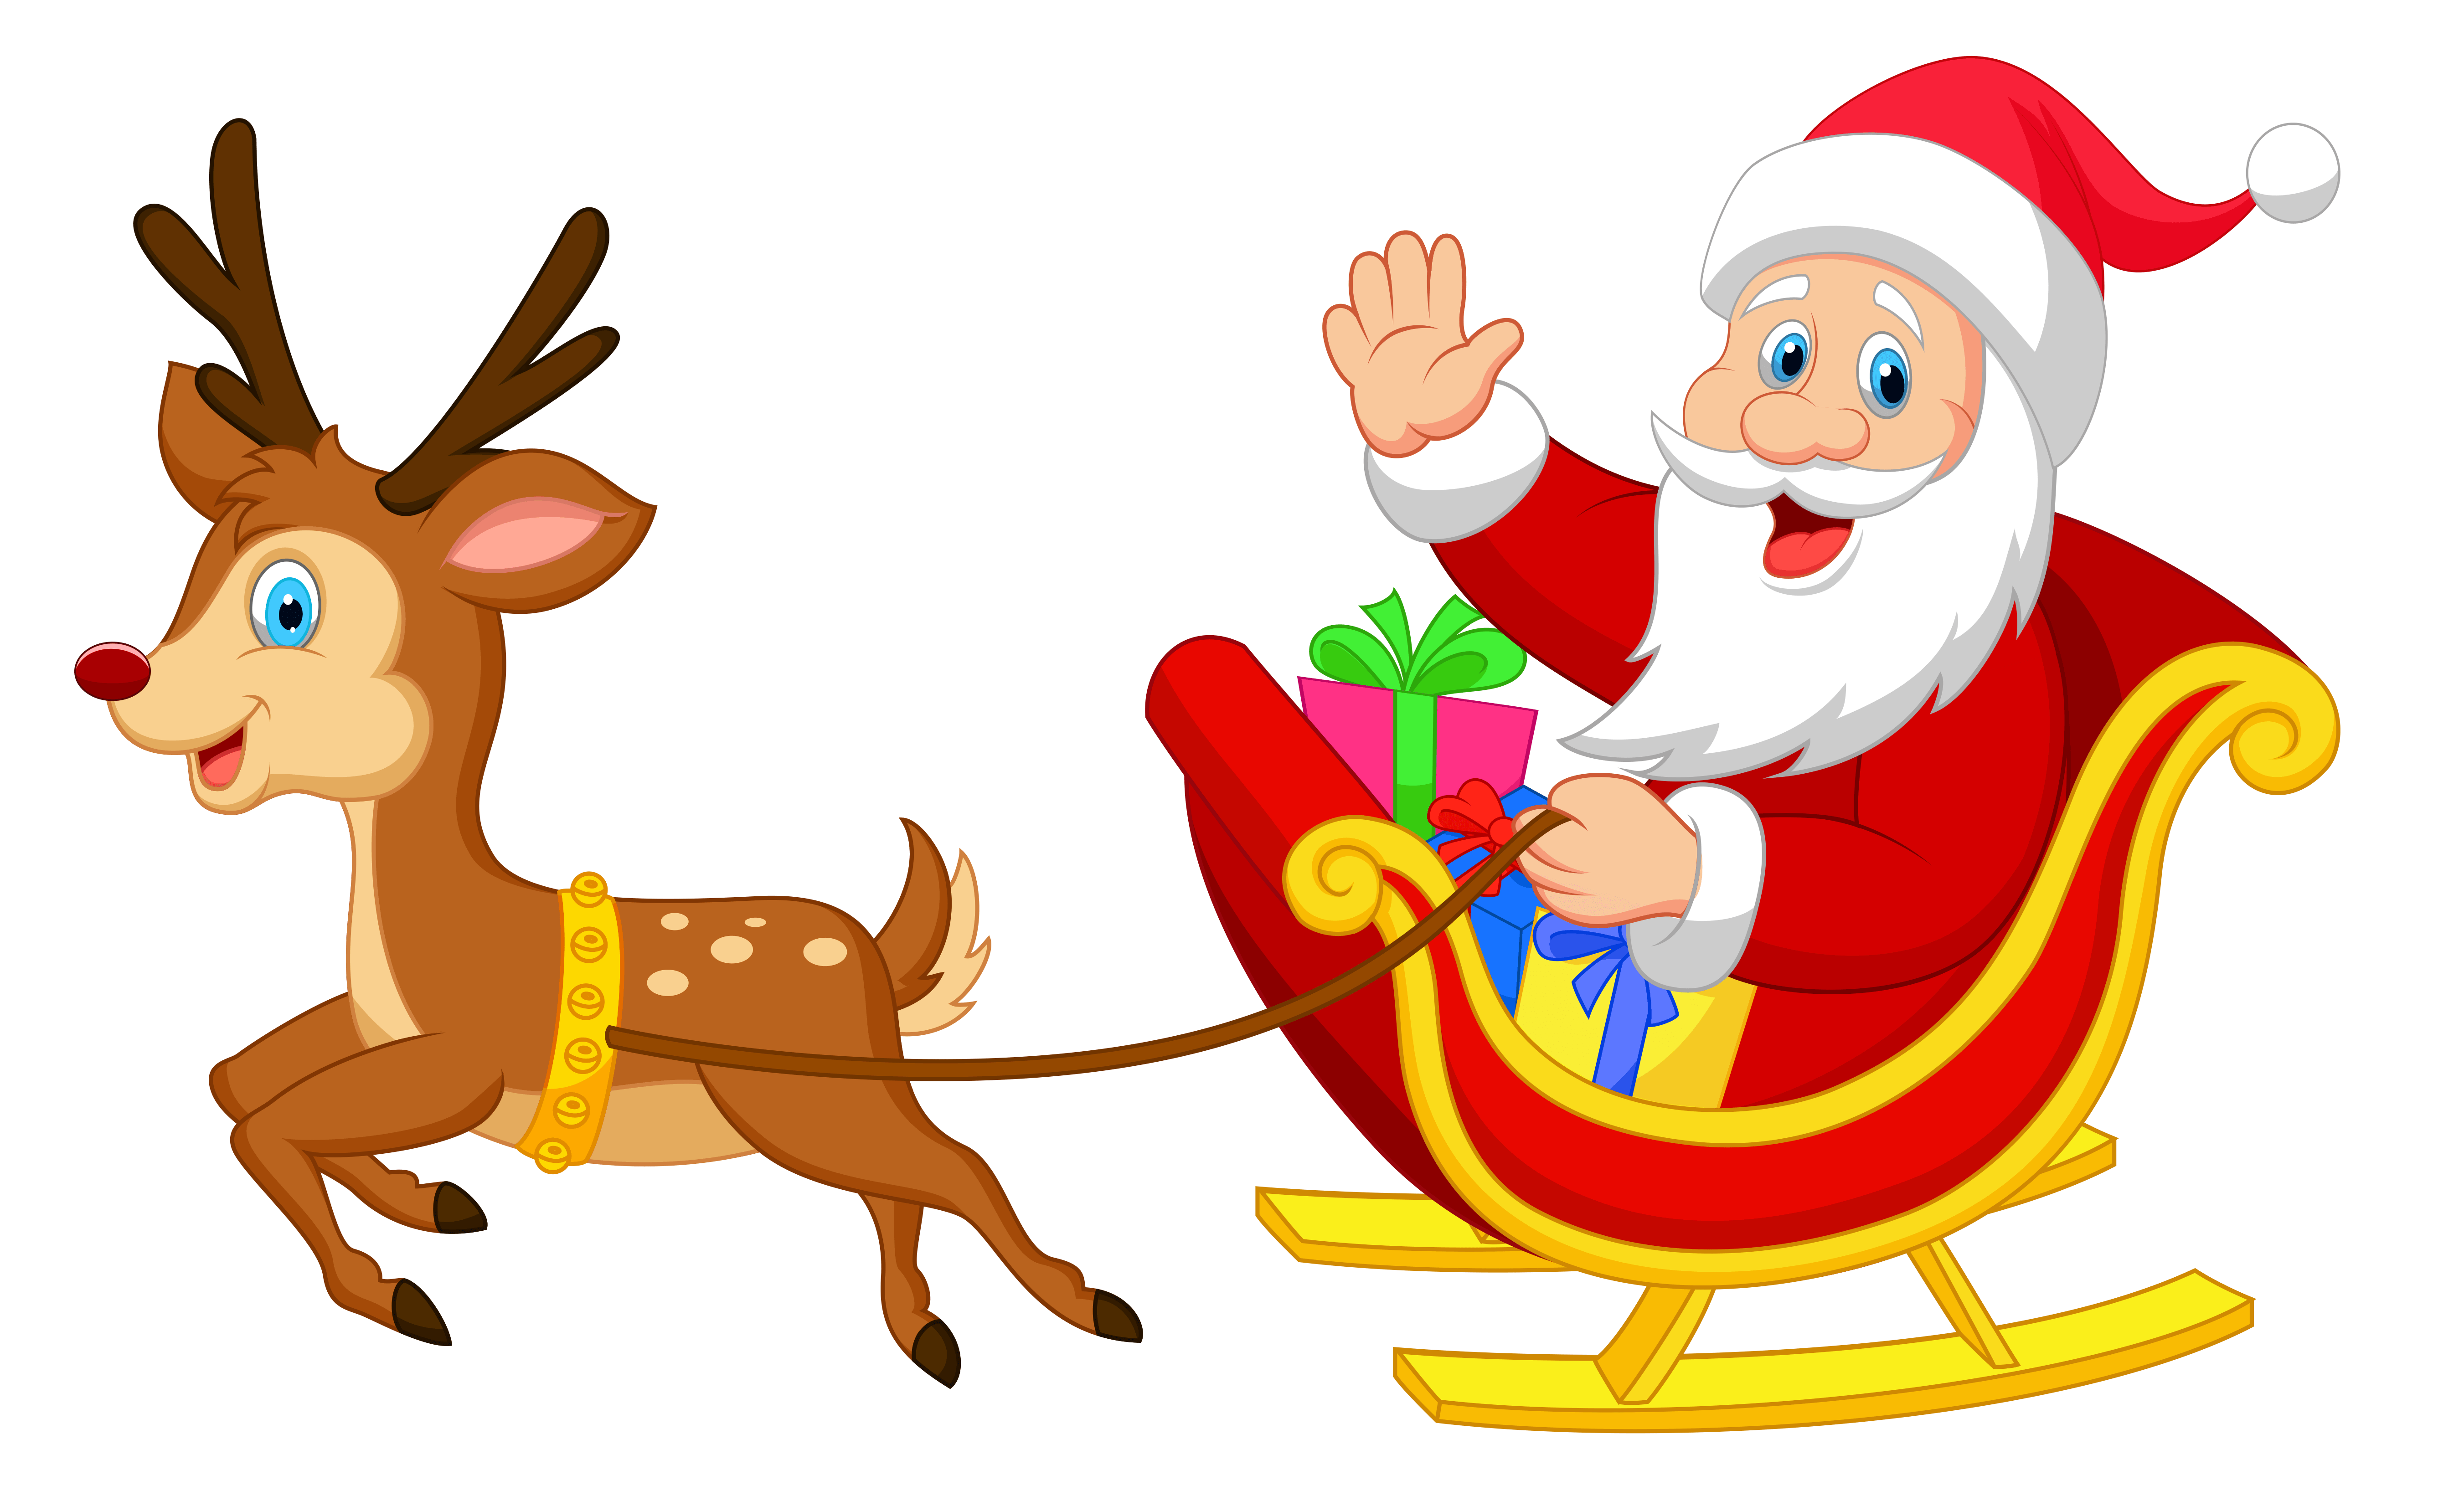 Free santa claus clipart pictures clipart freeuse download Free Santa Claus Clipart - Clipart Junction clipart freeuse download